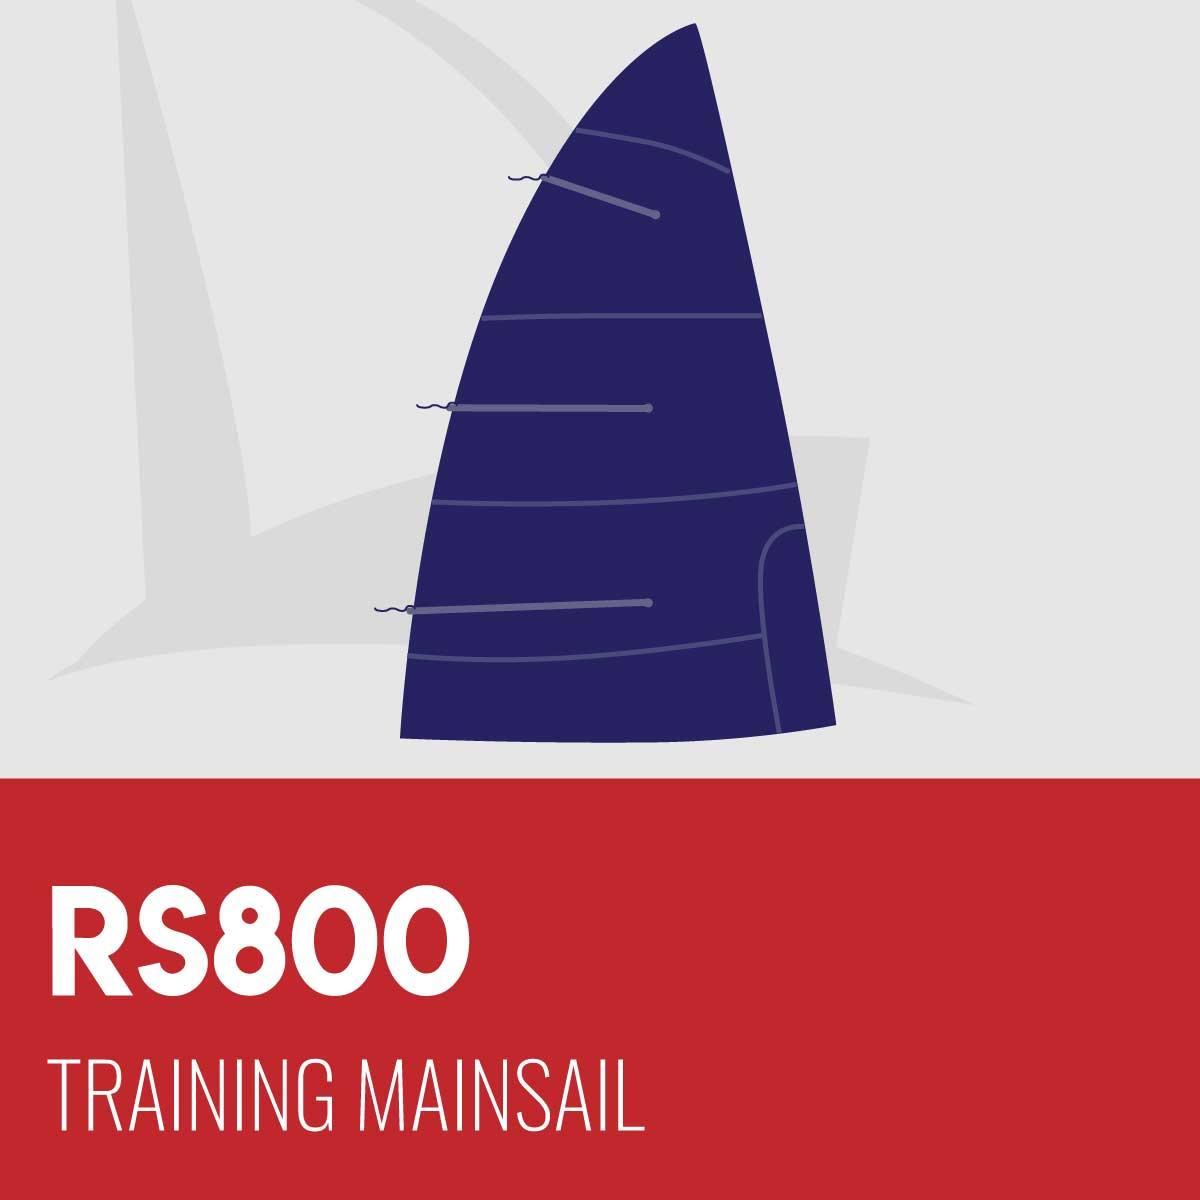 RS800 Training Mainsail